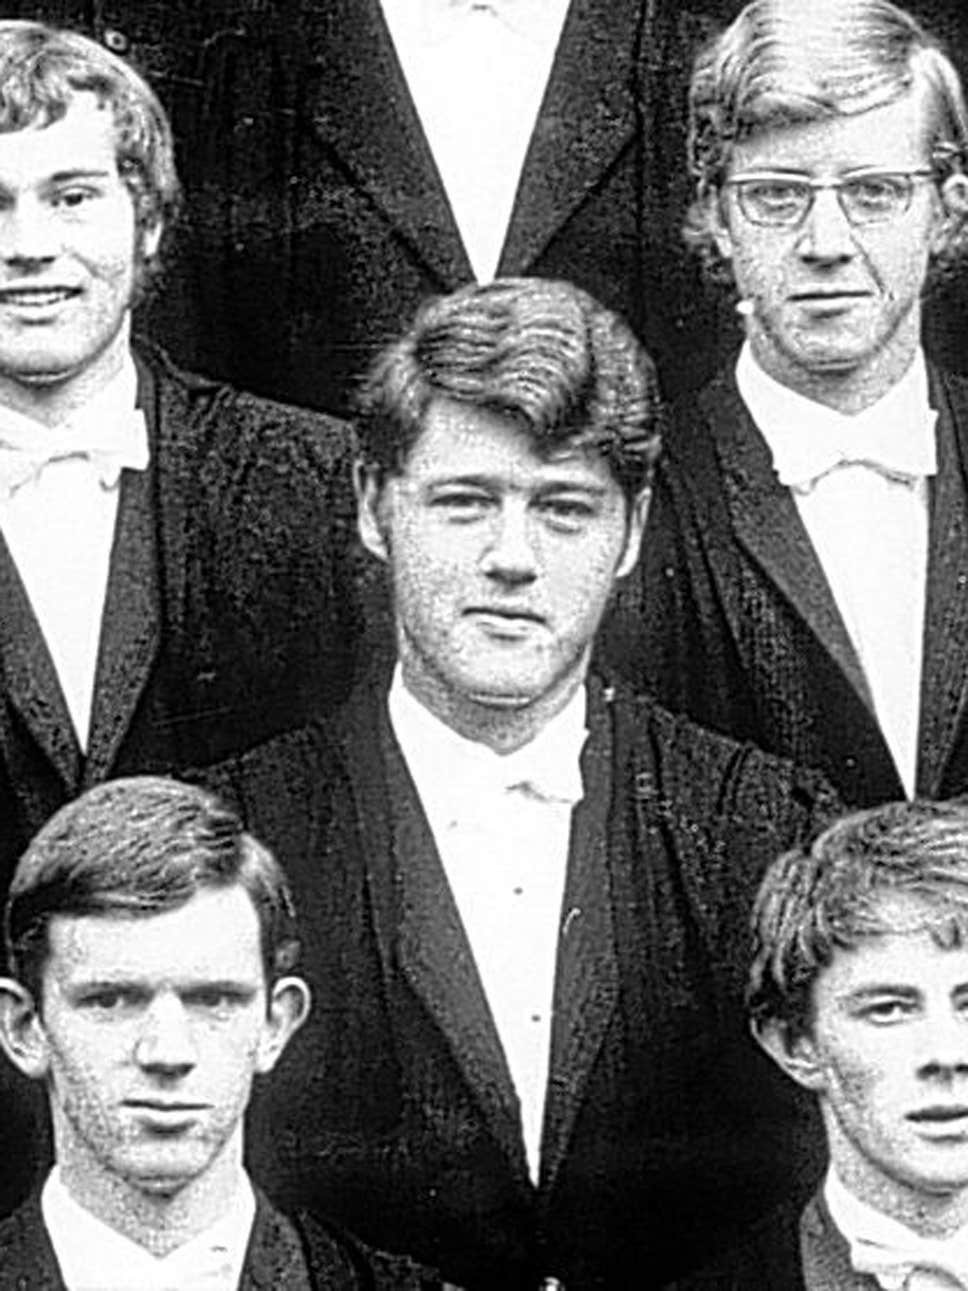 Bill Clinton Oxford 1968.